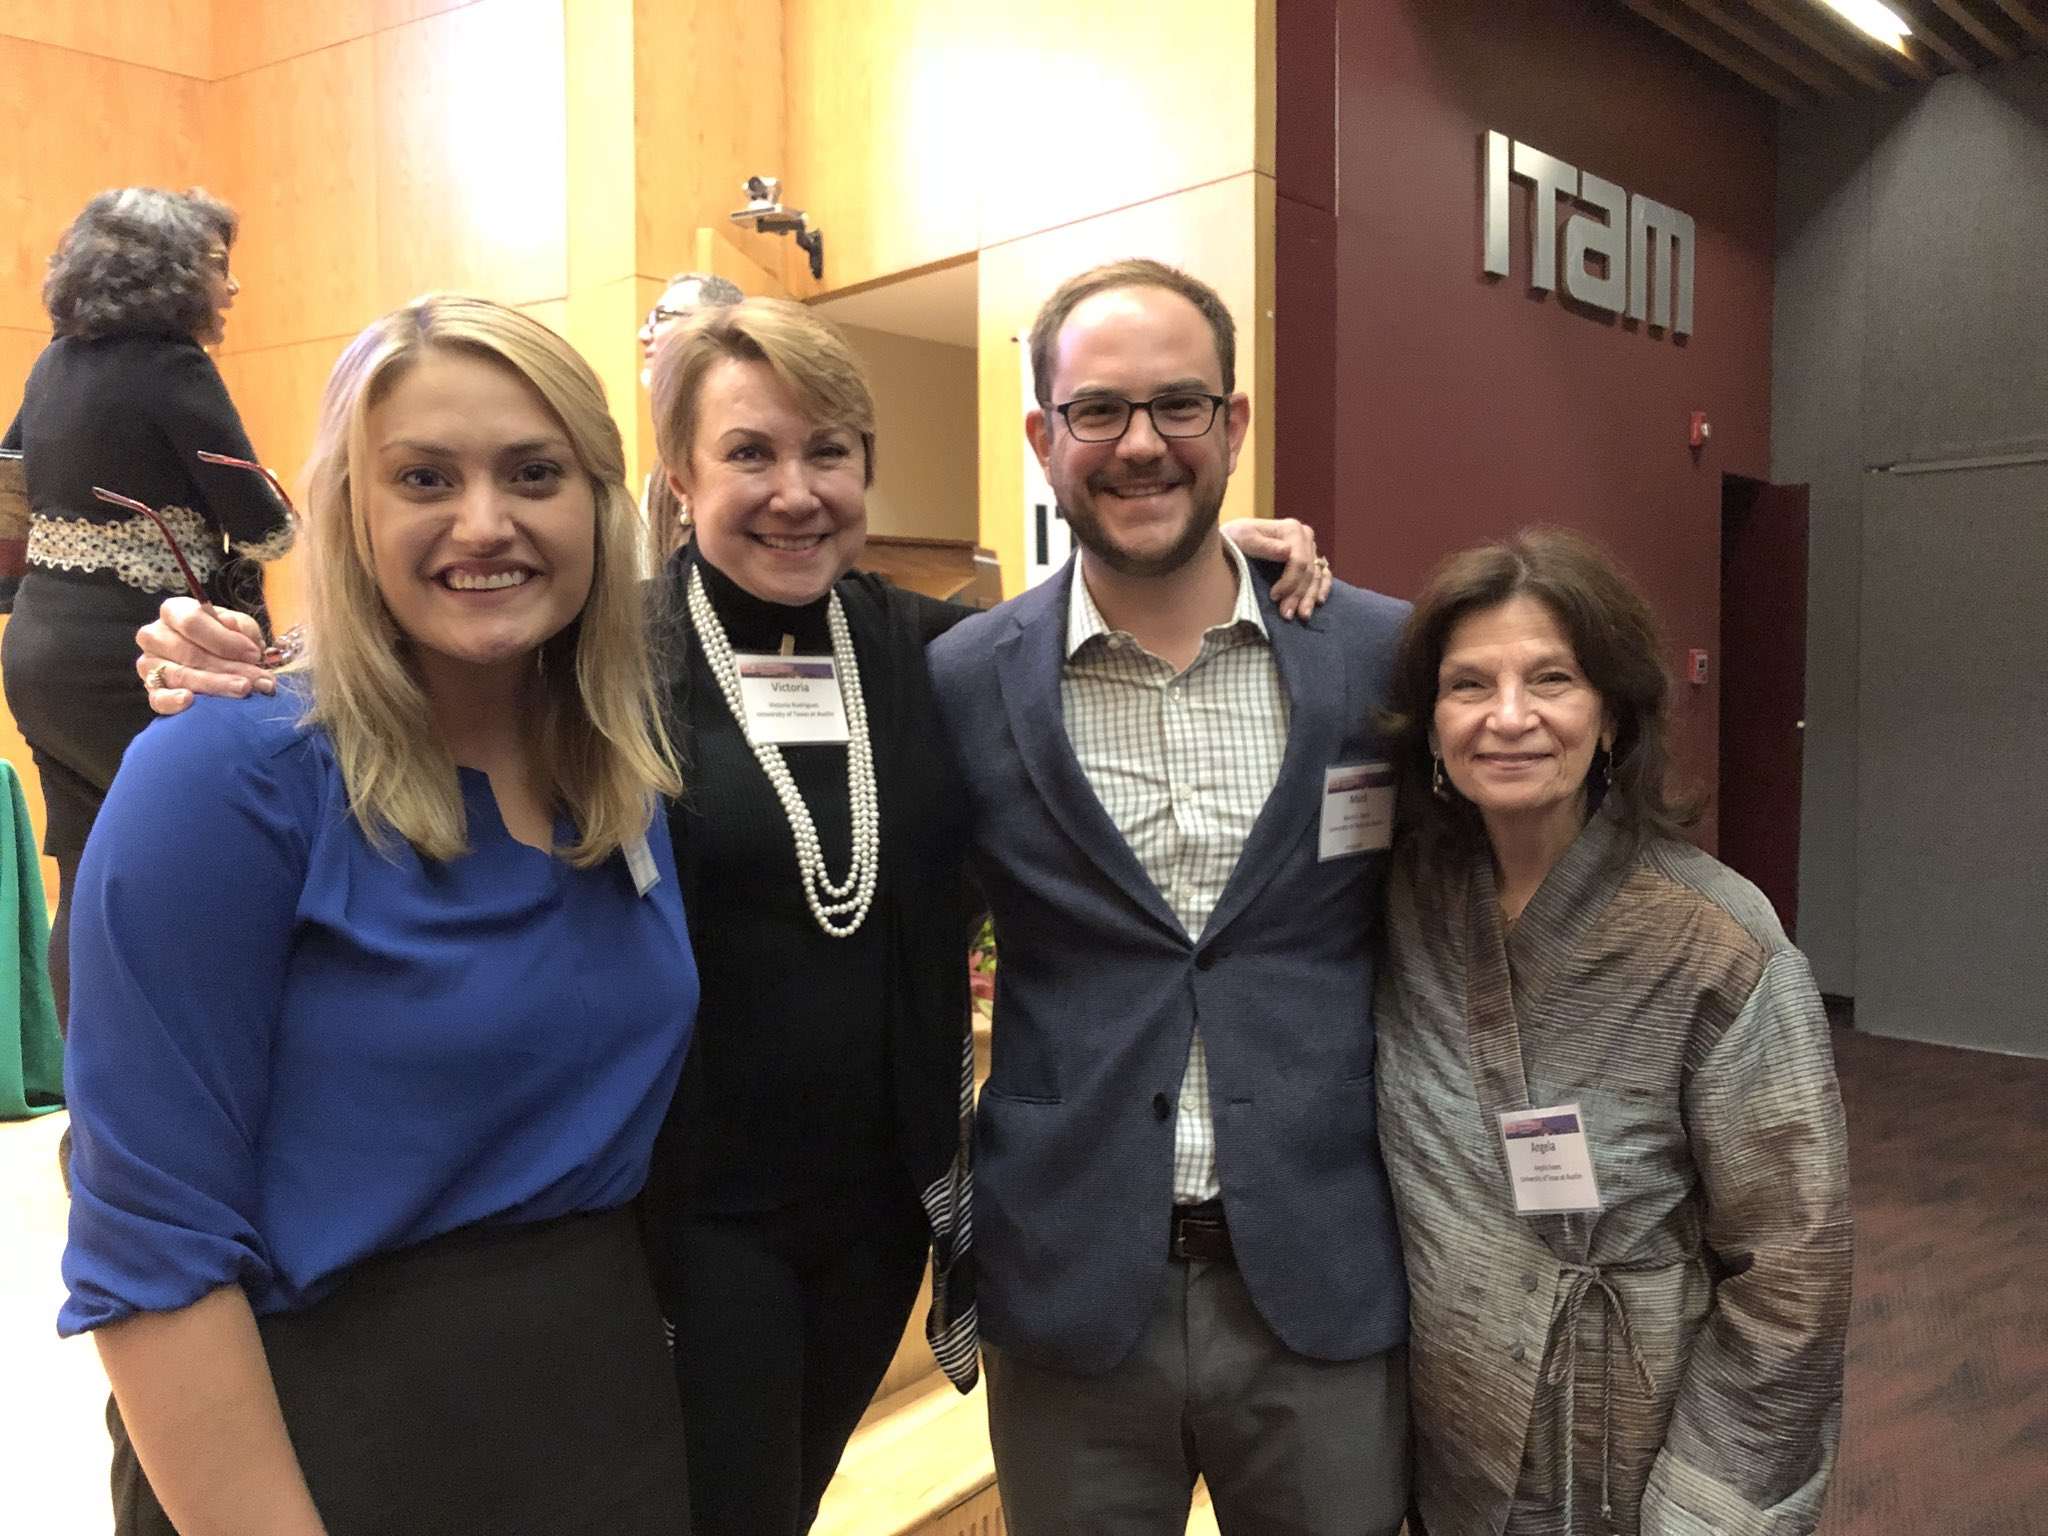 two PhD students smile with faculty from the LBJ School, three females and one male are pictured in business attire